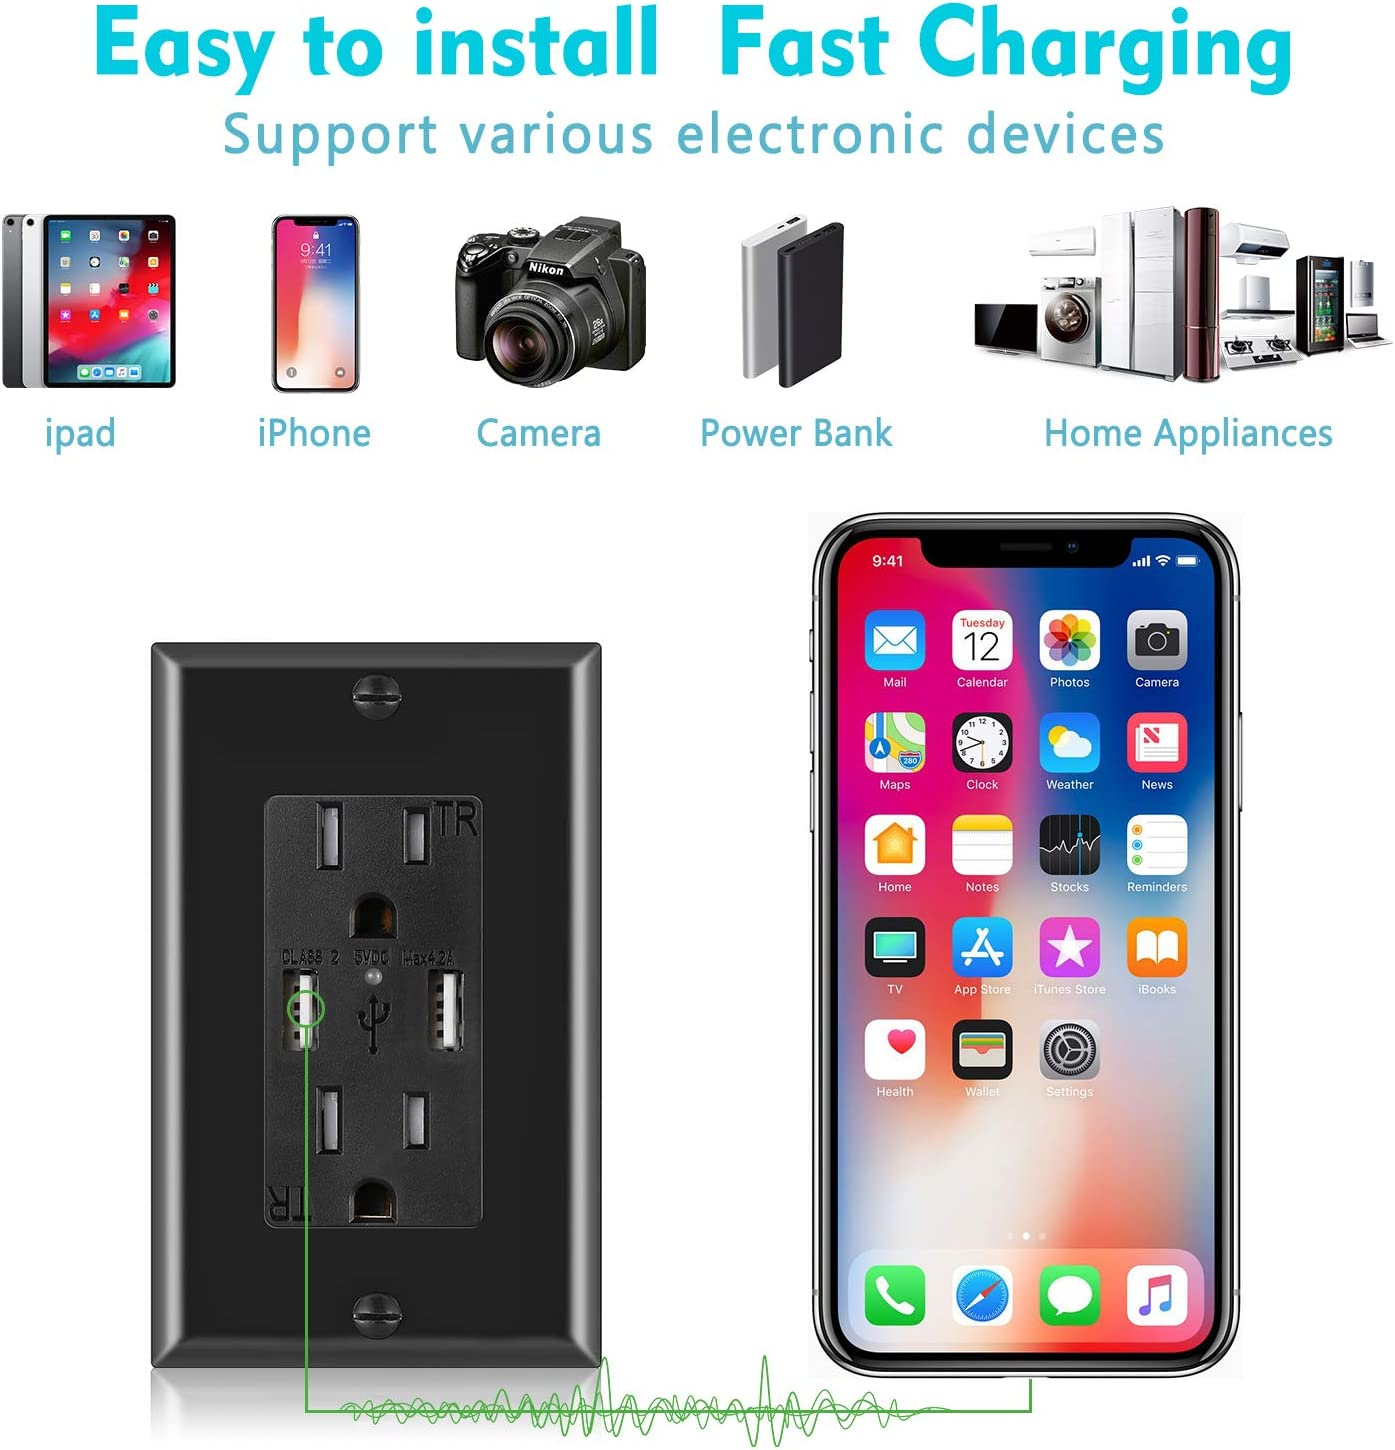 [2 Pack] USB Outlet, USB Charger Wall Outlet Dual High Speed 4.2 Amp USB Ports with Smart Chip, 15A/125V TR Tamper Resistant Receptacle Electrical Outlet, Wall Plate Included, ETL Listed, Black - -